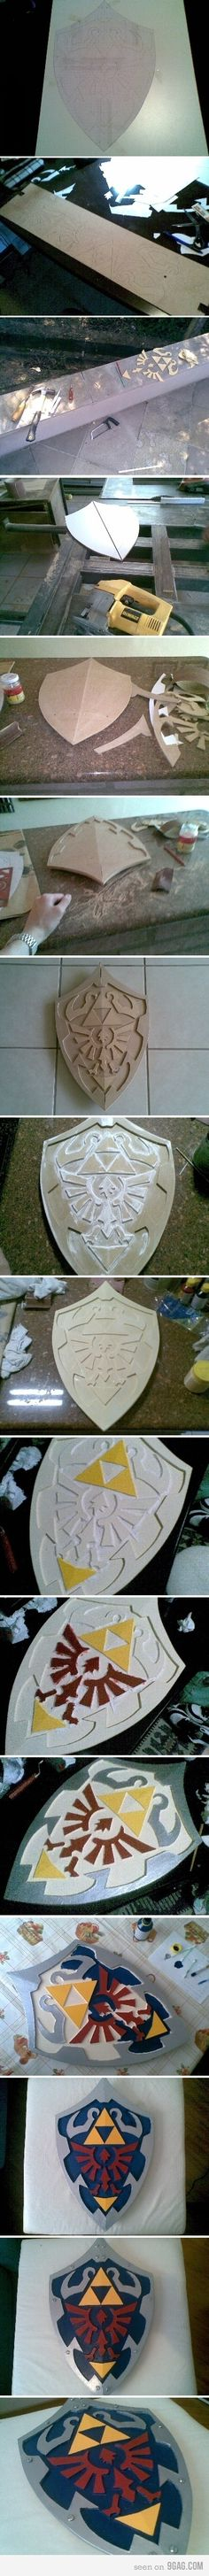 Making of an hylian shield - Zelda cosplay prop Link Cosplay, Cosplay Diy, Cosplay Costumes, Cosplay Ideas, Costume Ideas, Cosplay Tutorial, The Villain, Legend Of Zelda, Best Funny Pictures